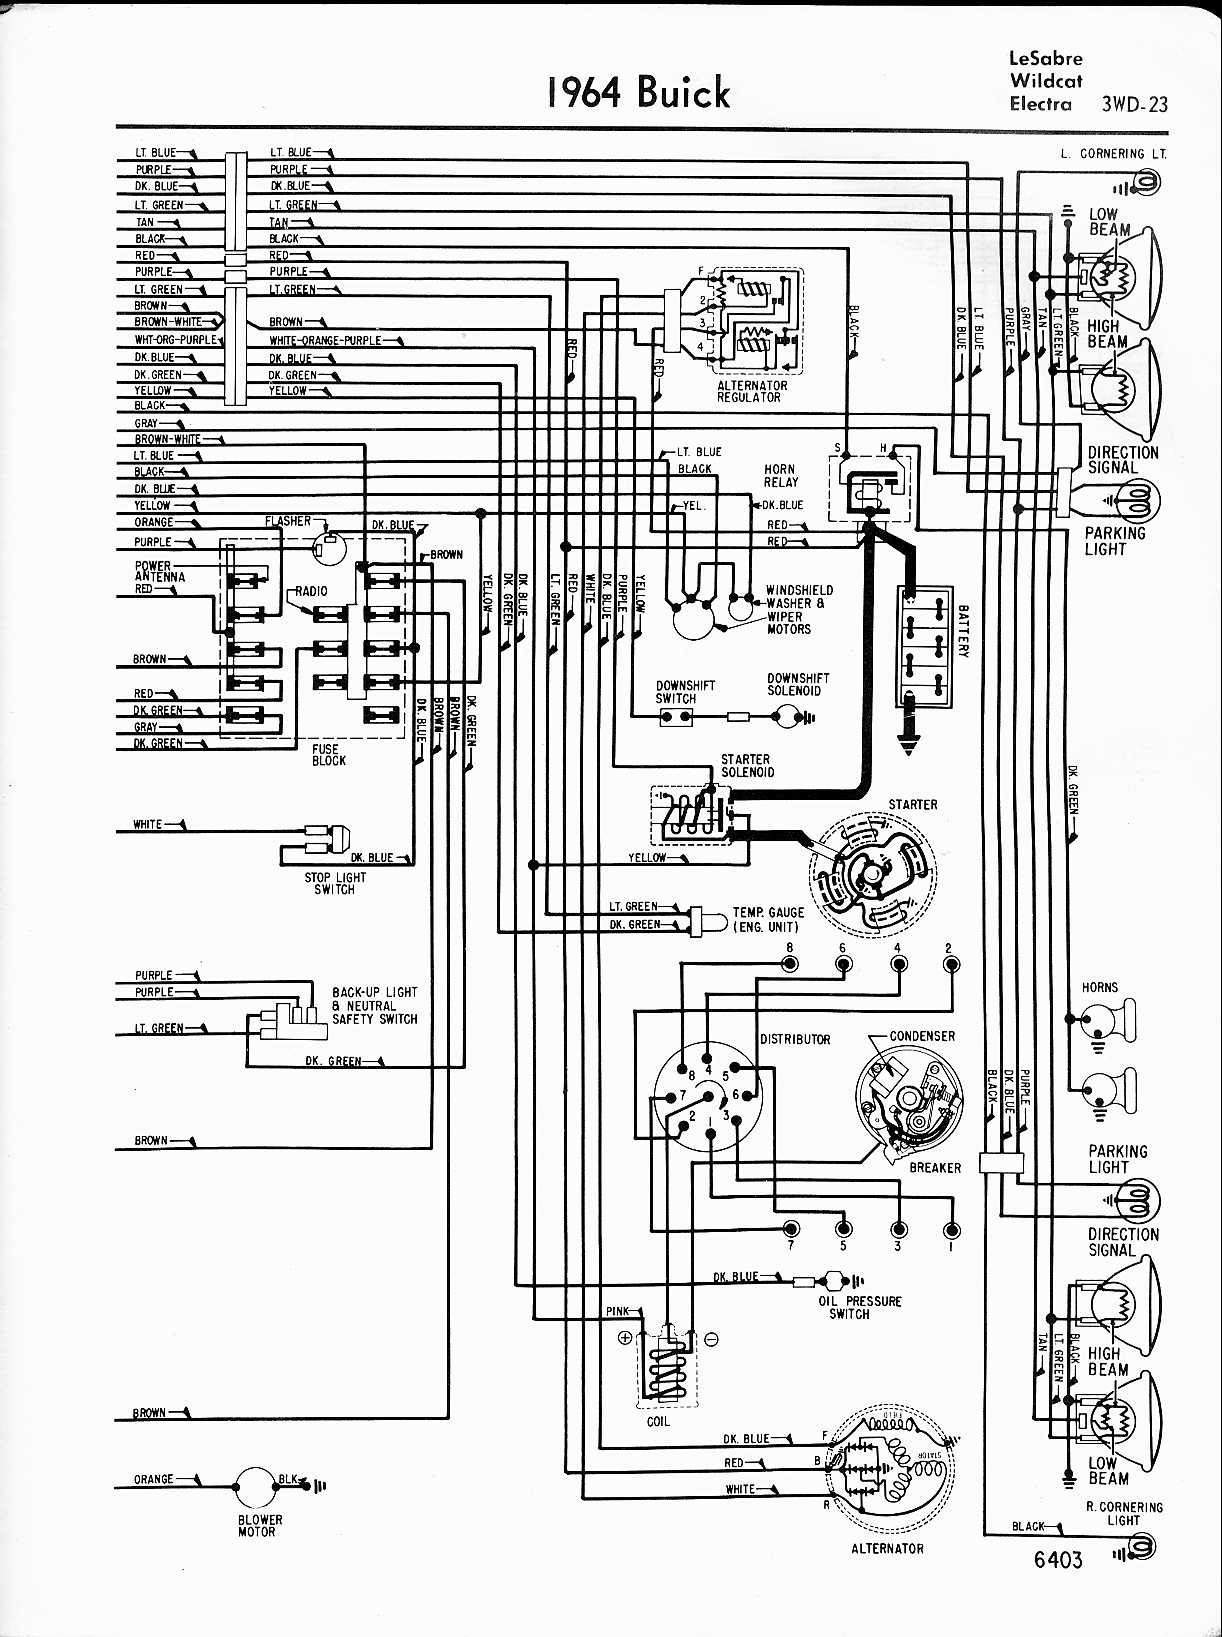 Wiring Diagram 1992 Buick Regal Wiring Diagram Productive Productive Zaafran It